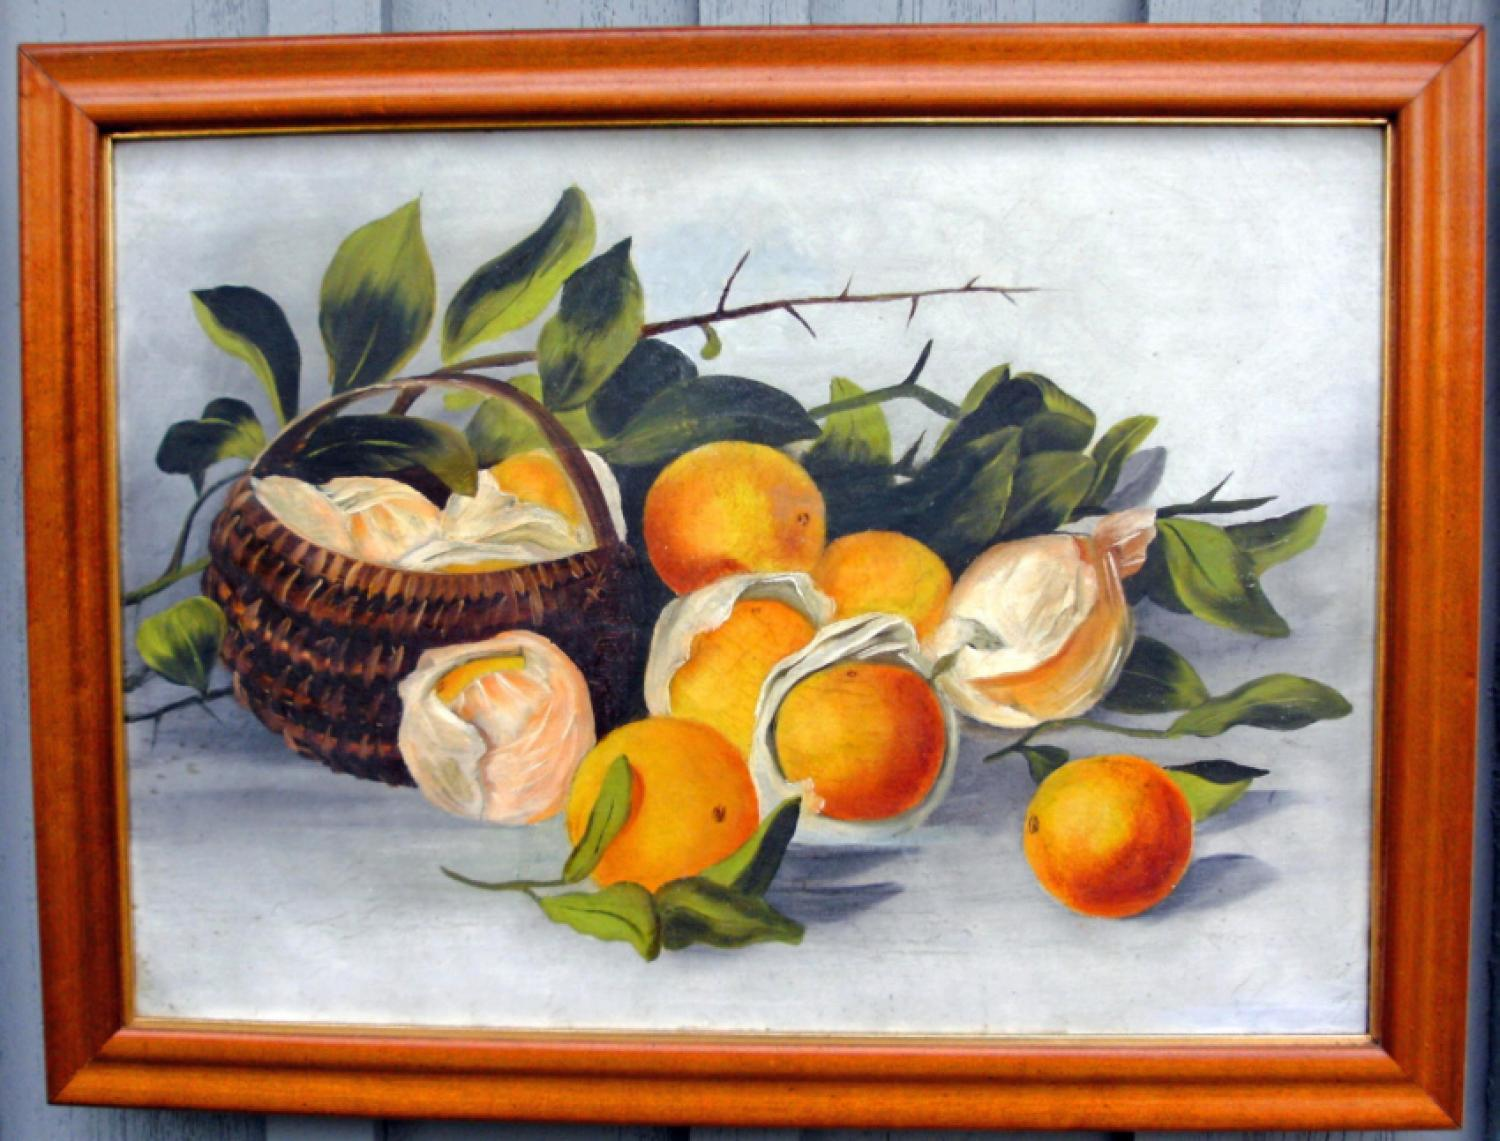 American primitive still life painting of wrapped oranges